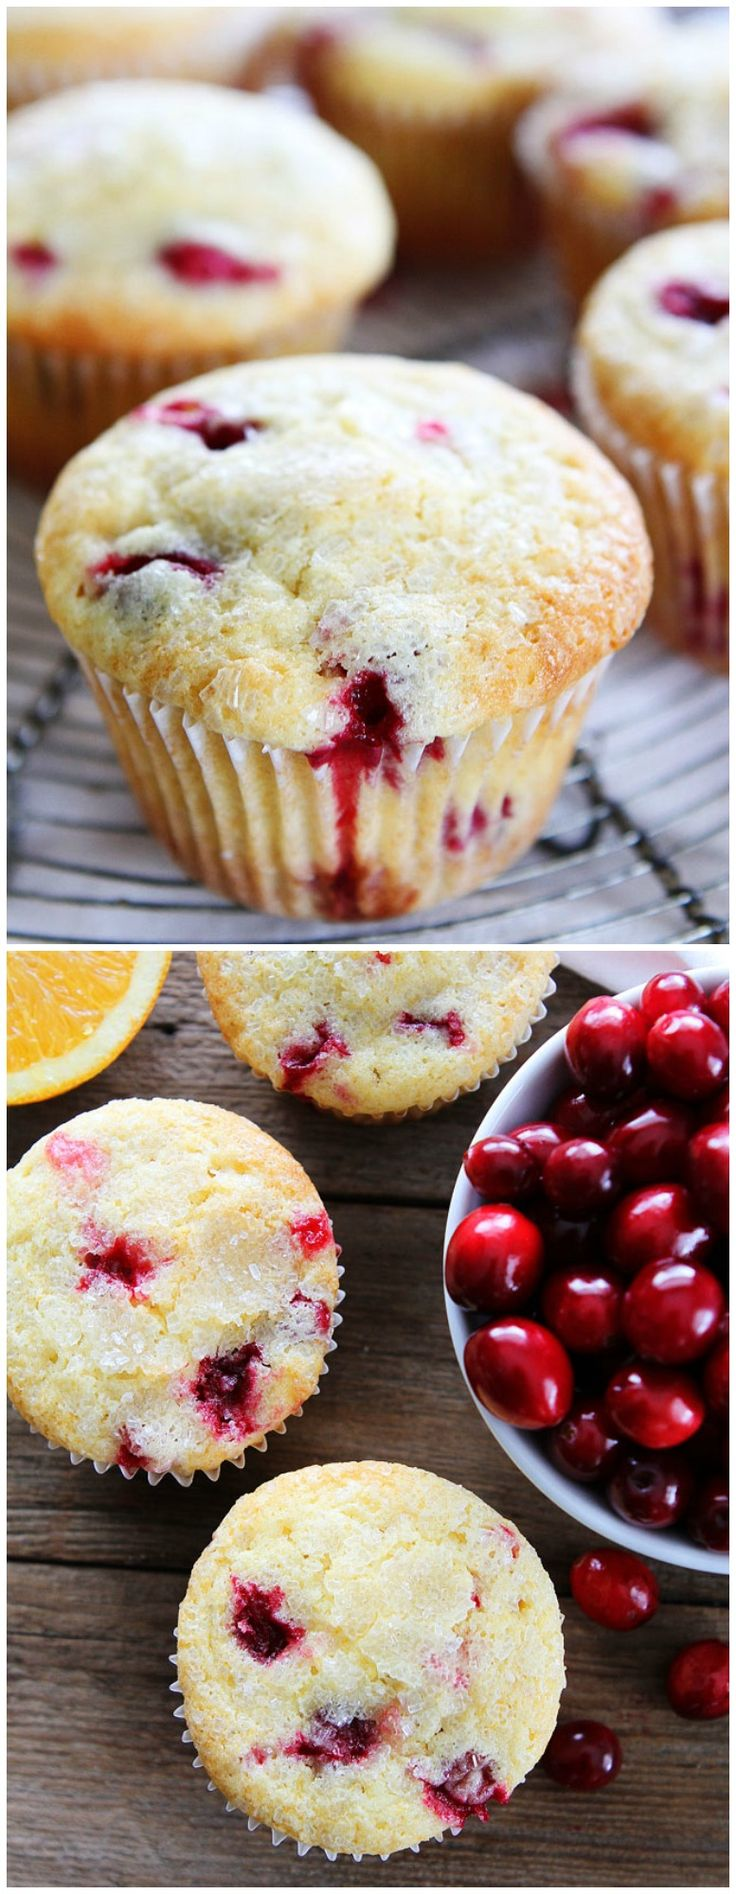 Cranberry Orange Muffin Recipe on twopeasandtheirpod.com These are the BEST muffins and perfect for the holiday season!